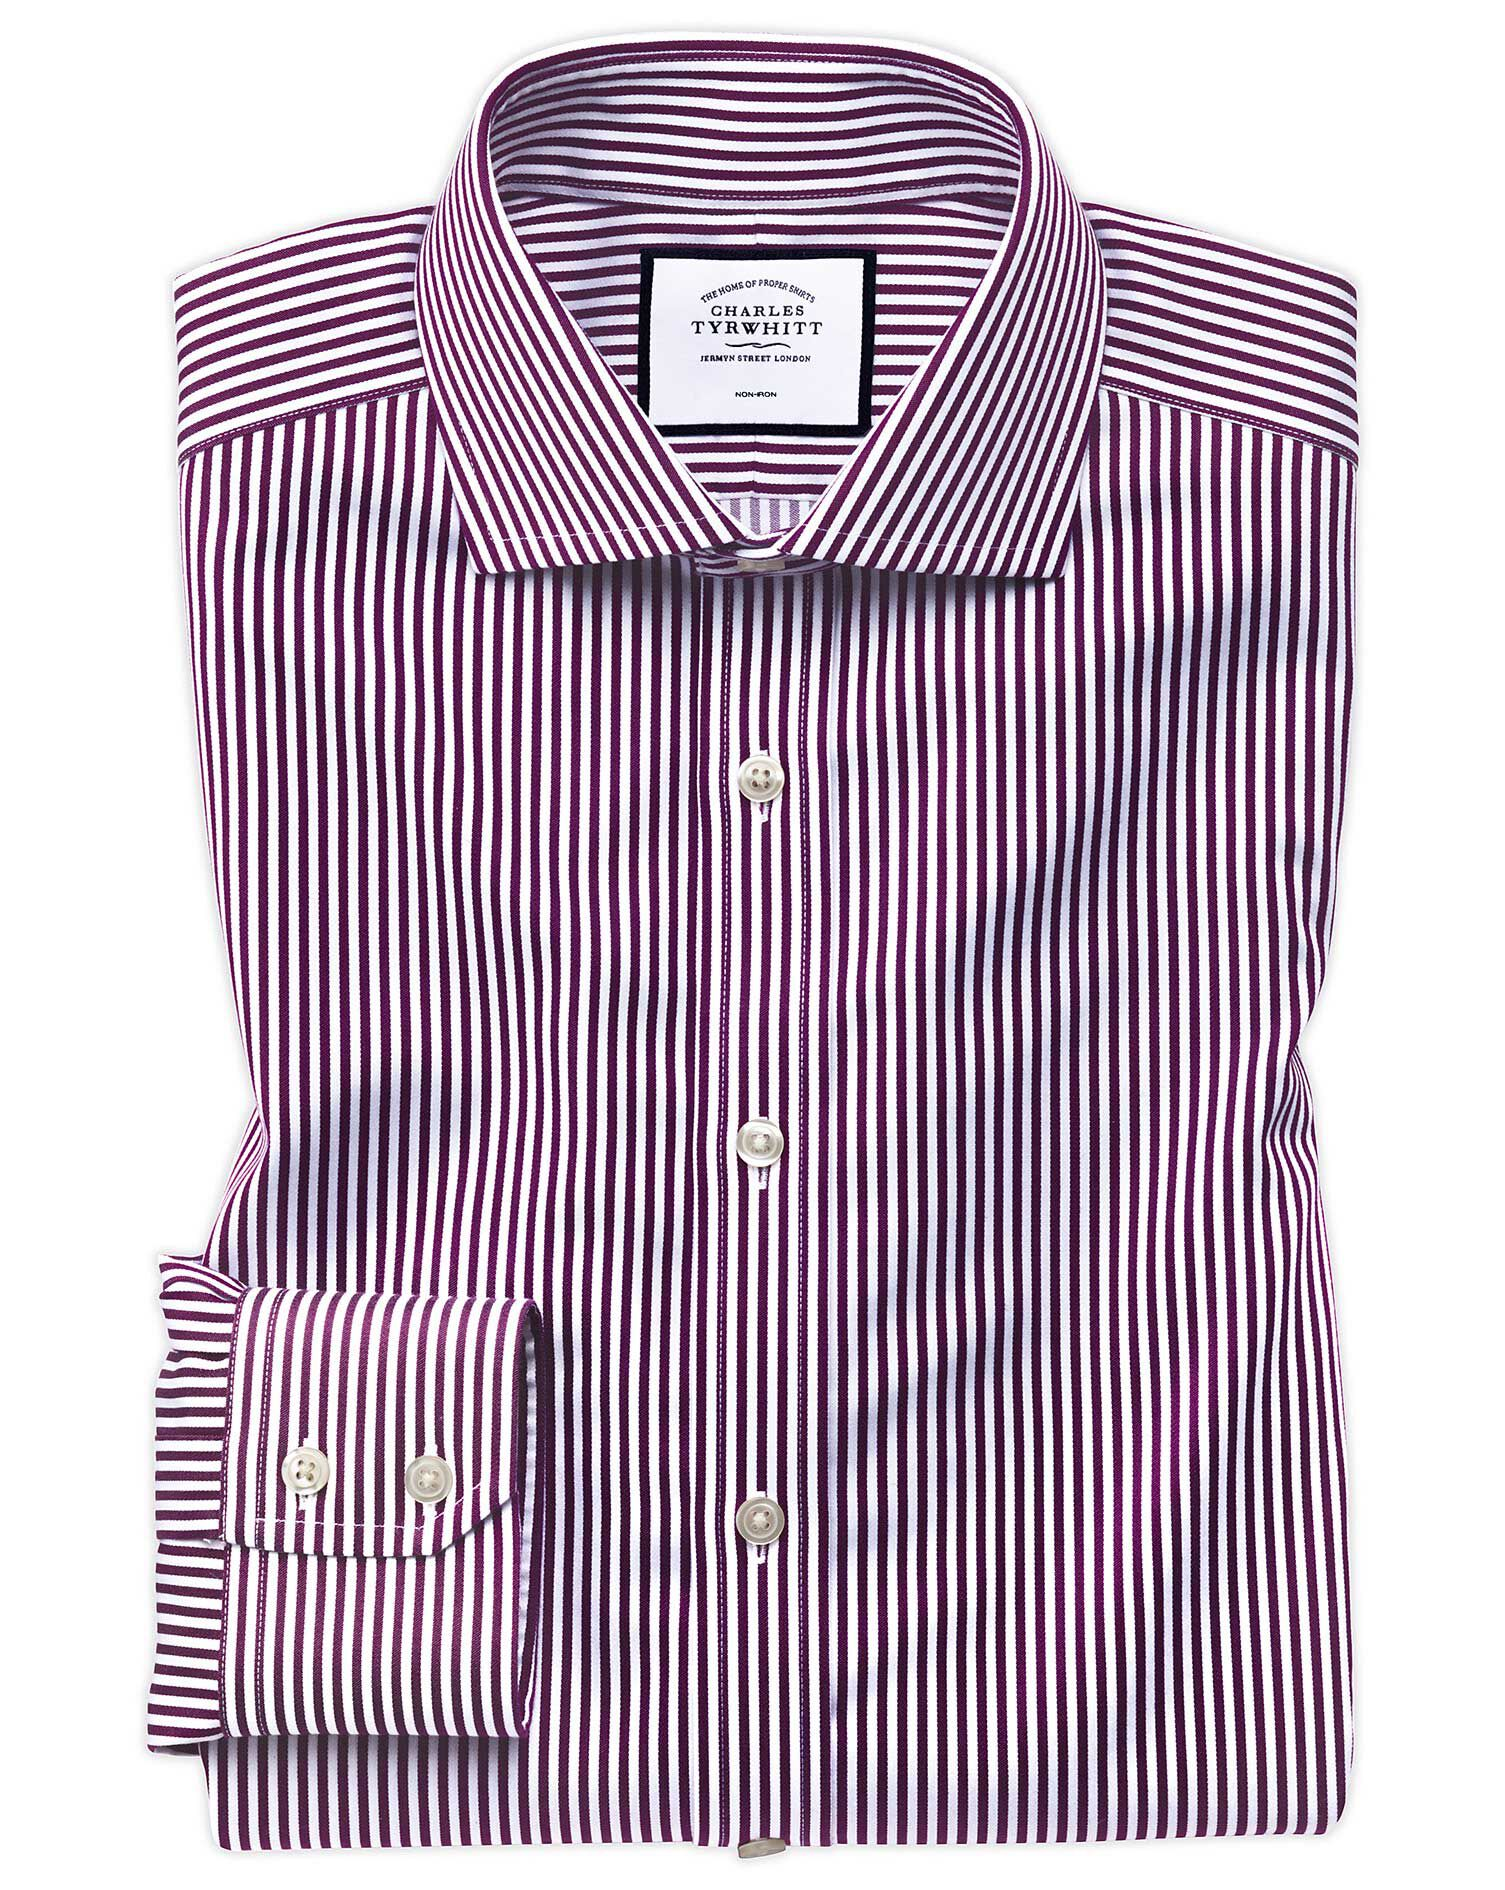 Slim Fit Non-Iron Cutaway Collar Berry Twill Stripe Cotton Formal Shirt Single Cuff Size 15/33 by Ch